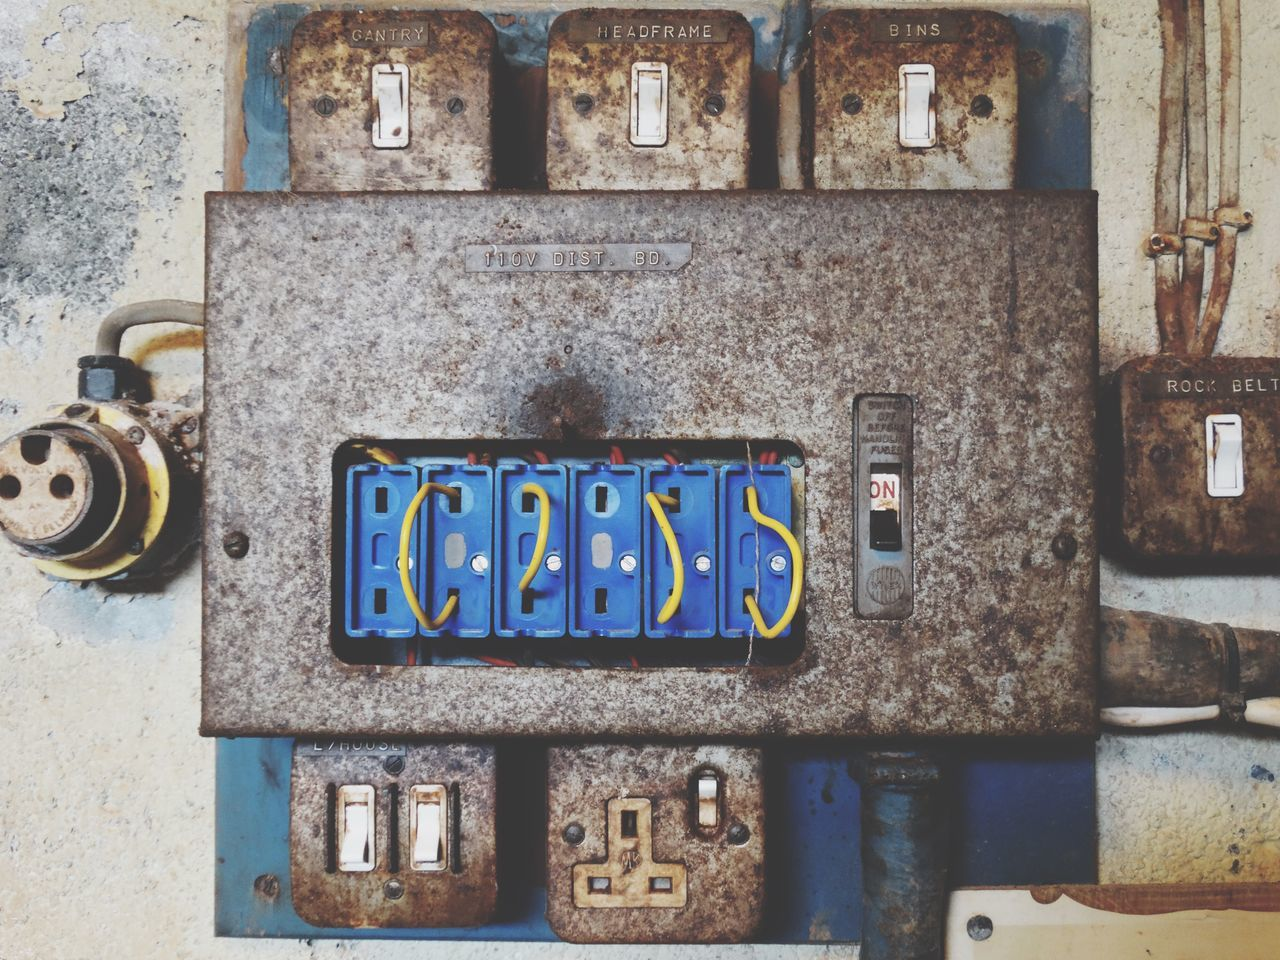 Circuitry. Communication No People Outdoors Day Text Building Exterior Built Structure Textured  Brick Wall Architecture Close-up Circuit Circuit Board Machinery Technology Switches Switch Electricity  Dark Old Rusty